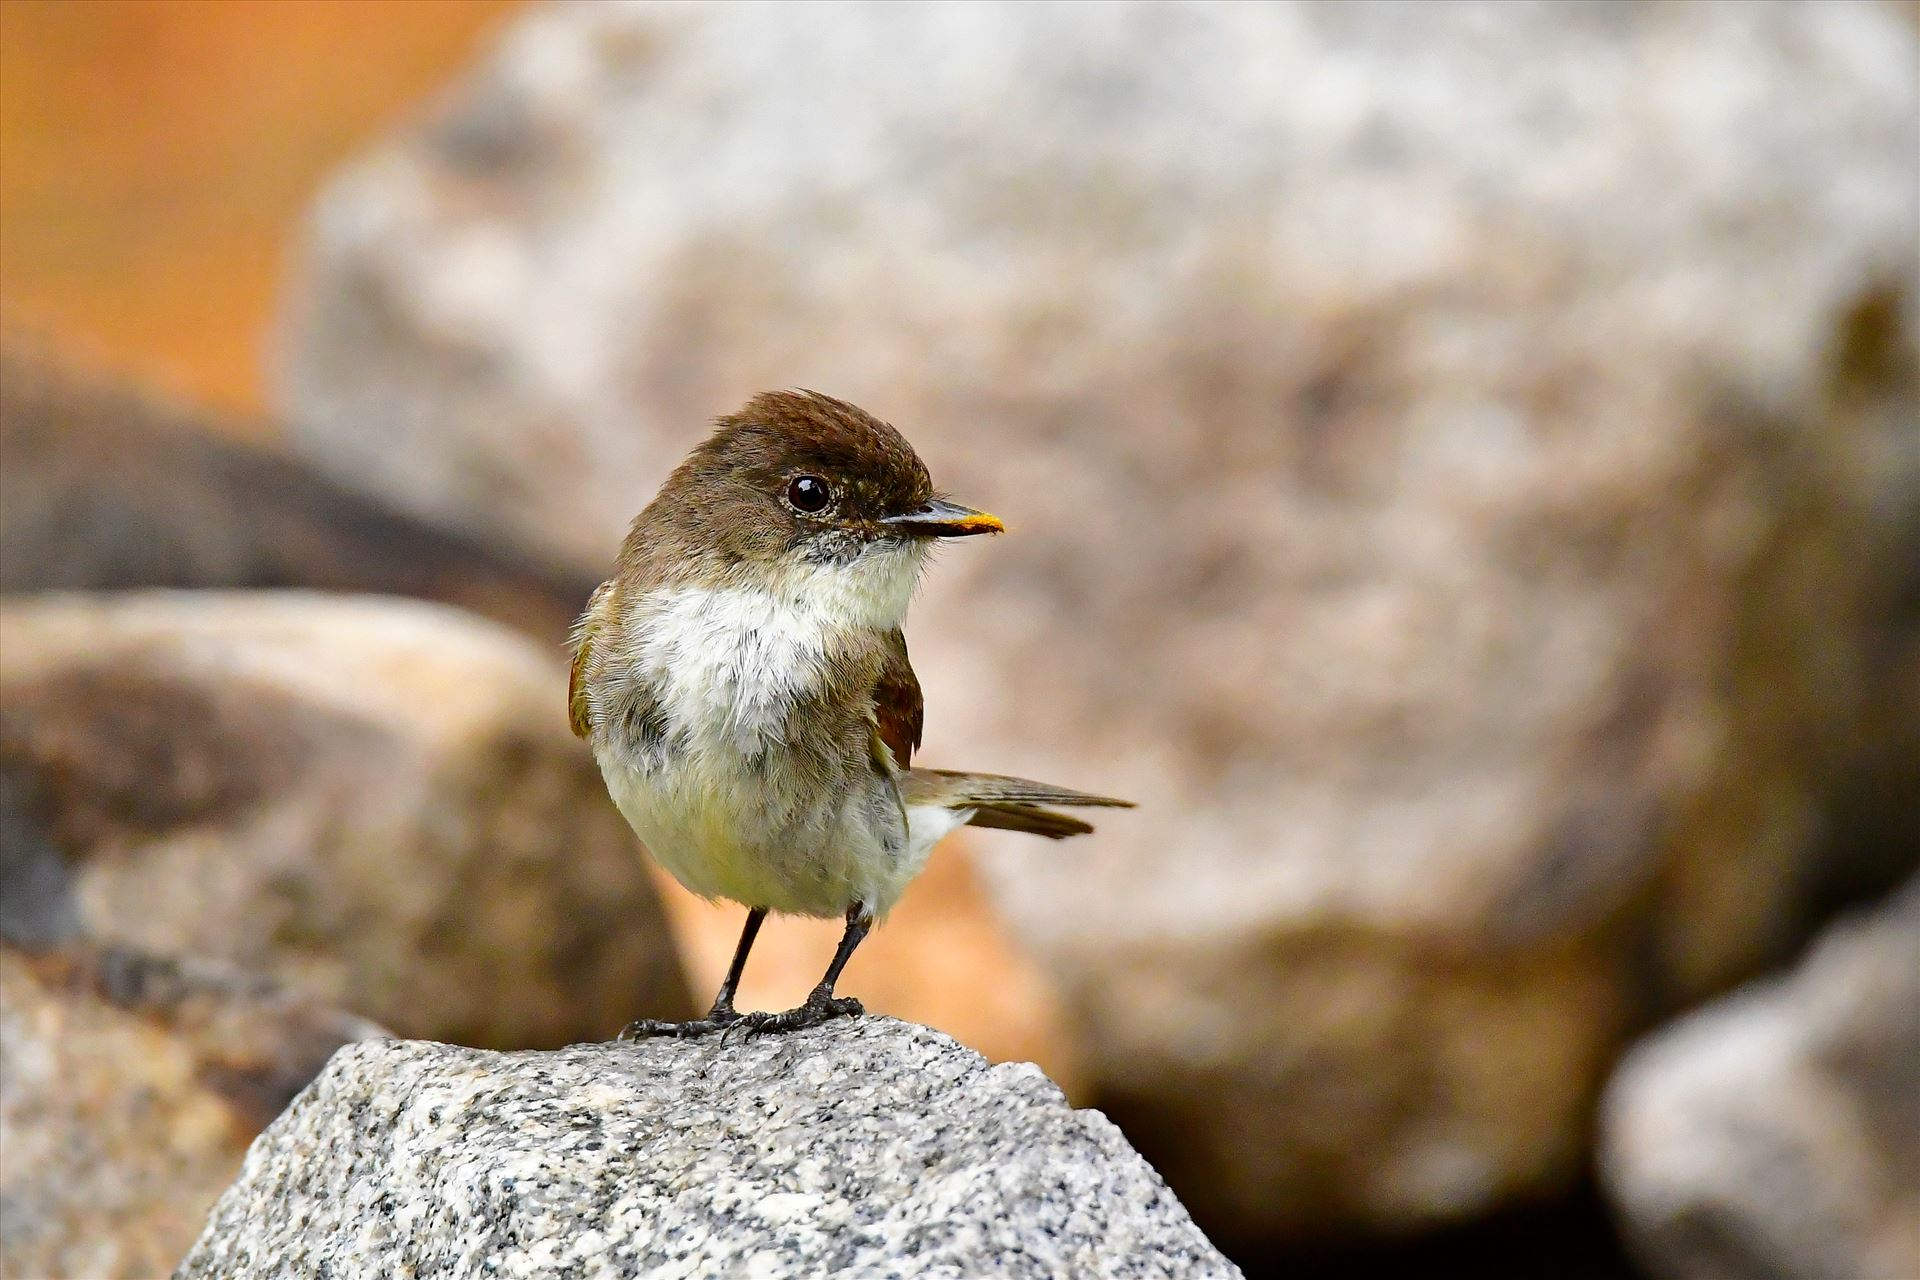 Eastern Phoebe - Northern Maine 2016 by Buckmaster